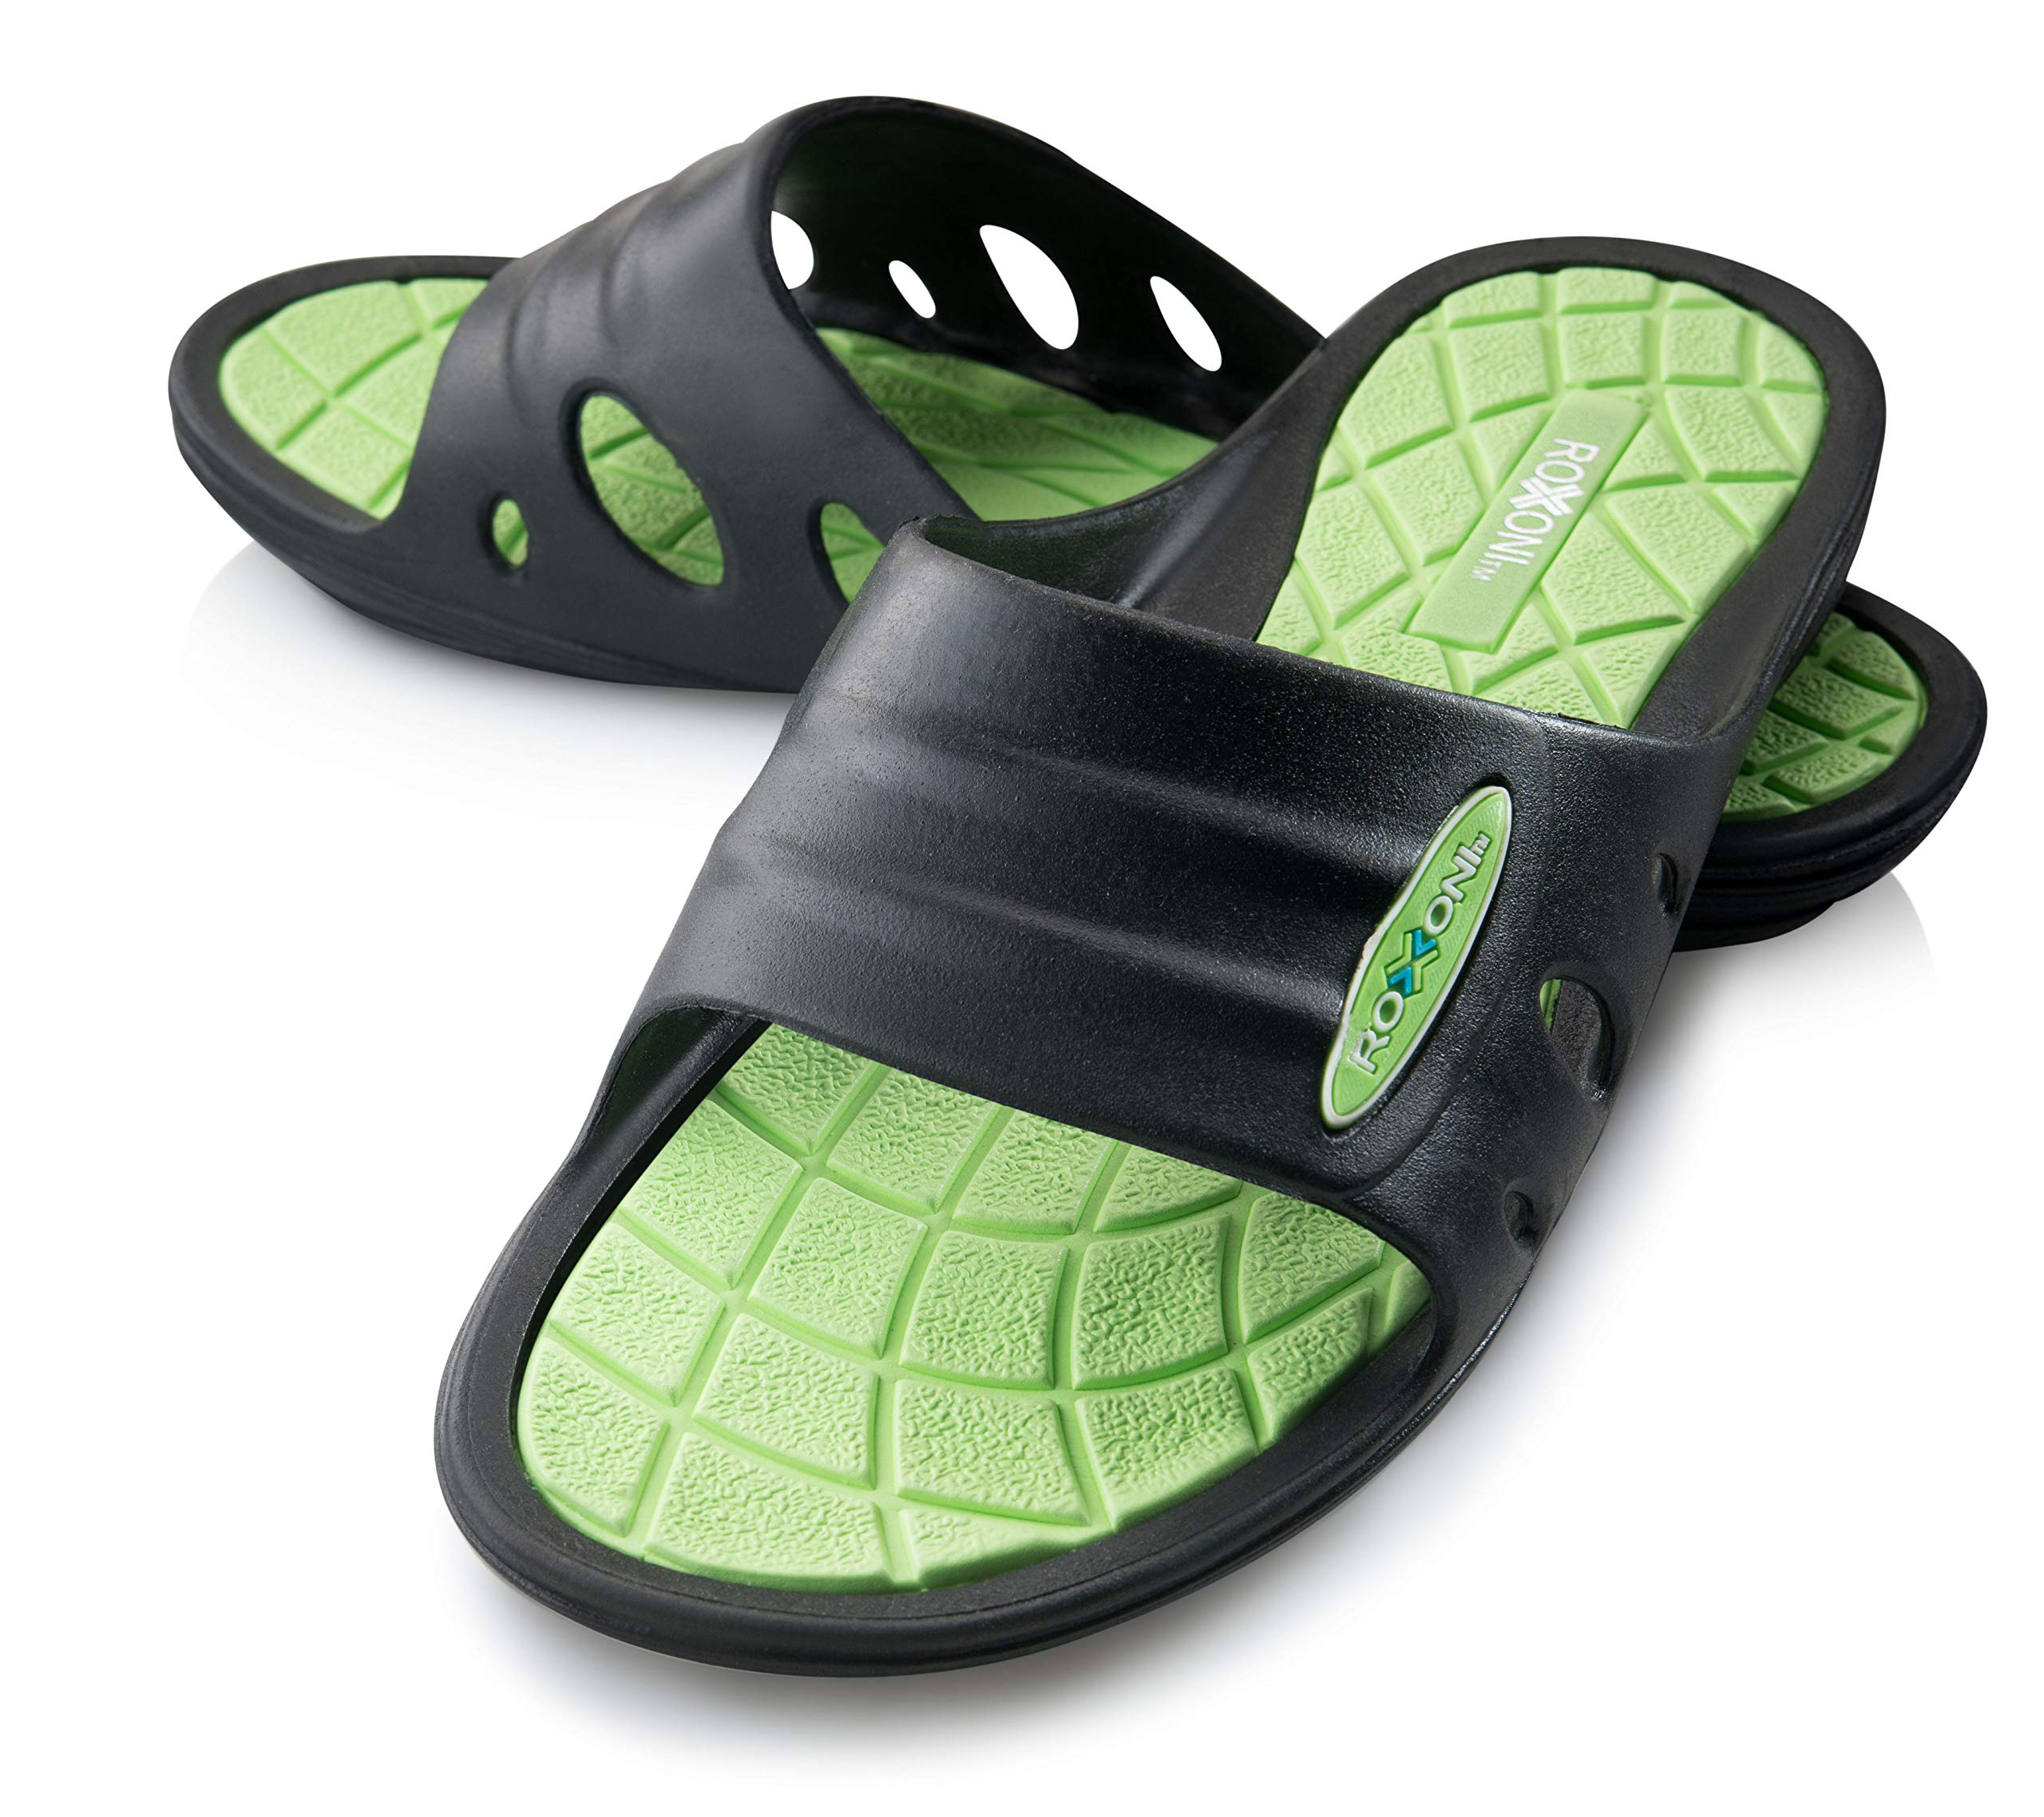 Roxoni Men/'s Rubber Sport Clogs with Breathable Mesh Upper